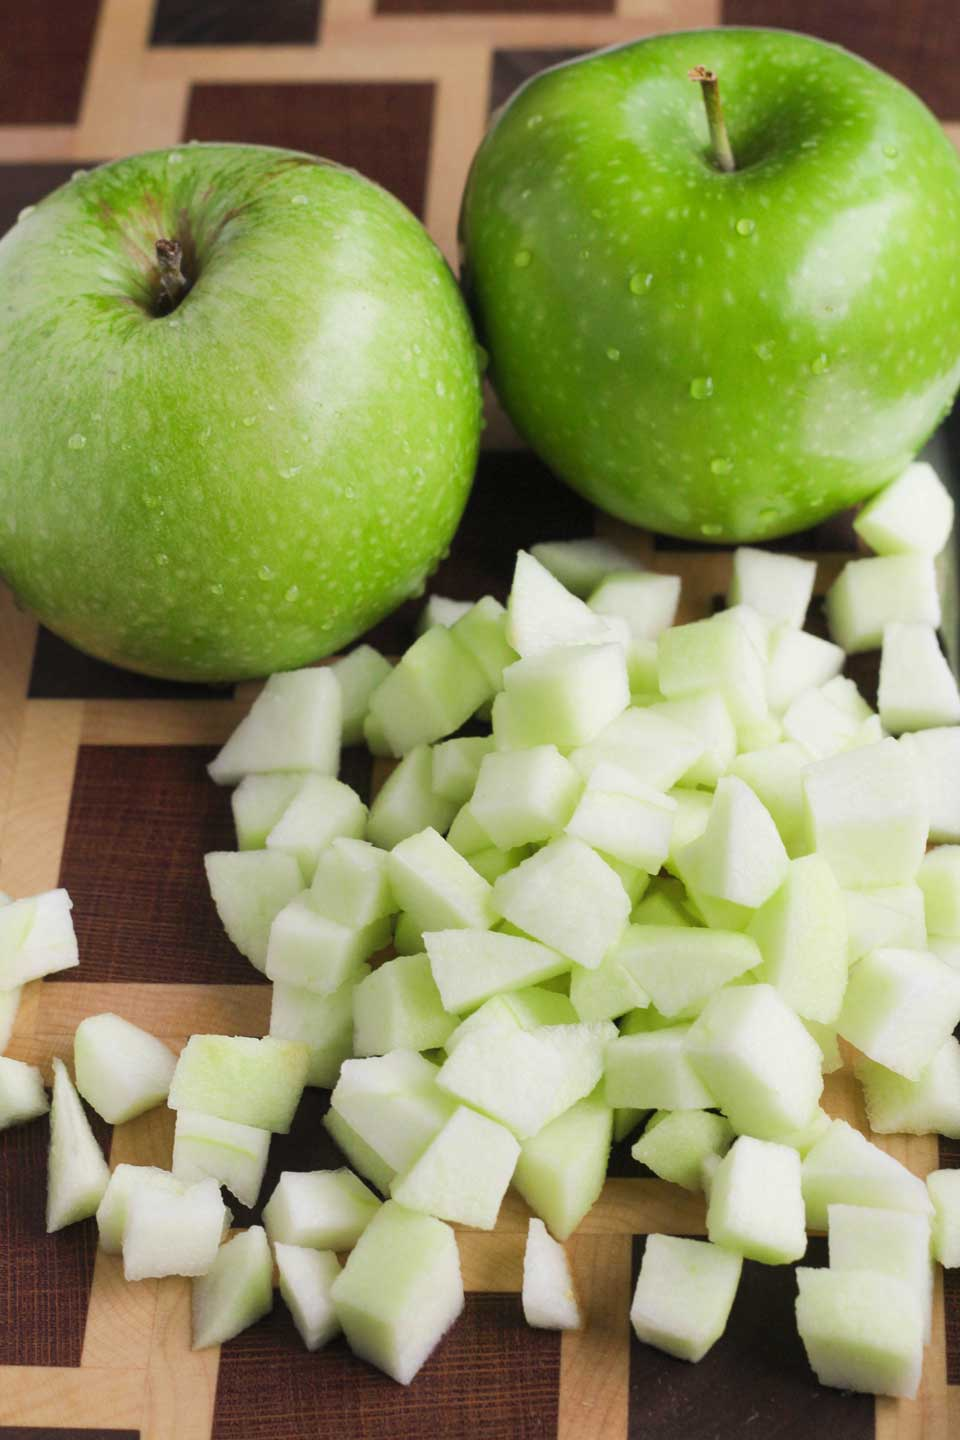 two green apples on cutting board with pile of diced apples ready for apple recipes